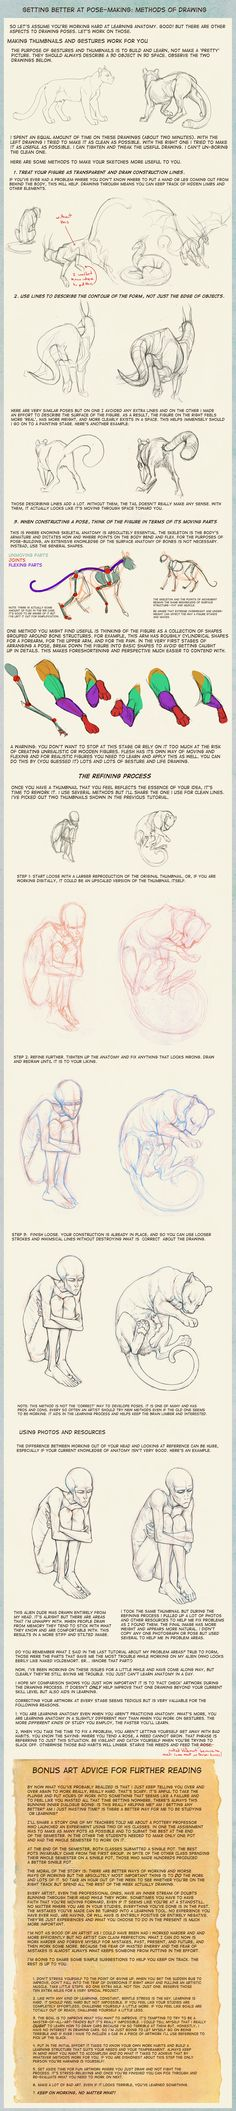 Poses: methods of drawing by hibbary.deviantart.com on @deviantART   ★    CHARACTER DESIGN REFERENCES (www.facebook.com/CharacterDesignReferences & pinterest.com/characterdesigh) • Love Character Design? Join the Character Design Challenge (link→ www.facebook.com/groups/CharacterDesignChallenge) Share your unique vision of a theme every month, promote your art and make new friends in a community of over 25.000 artists!    ★